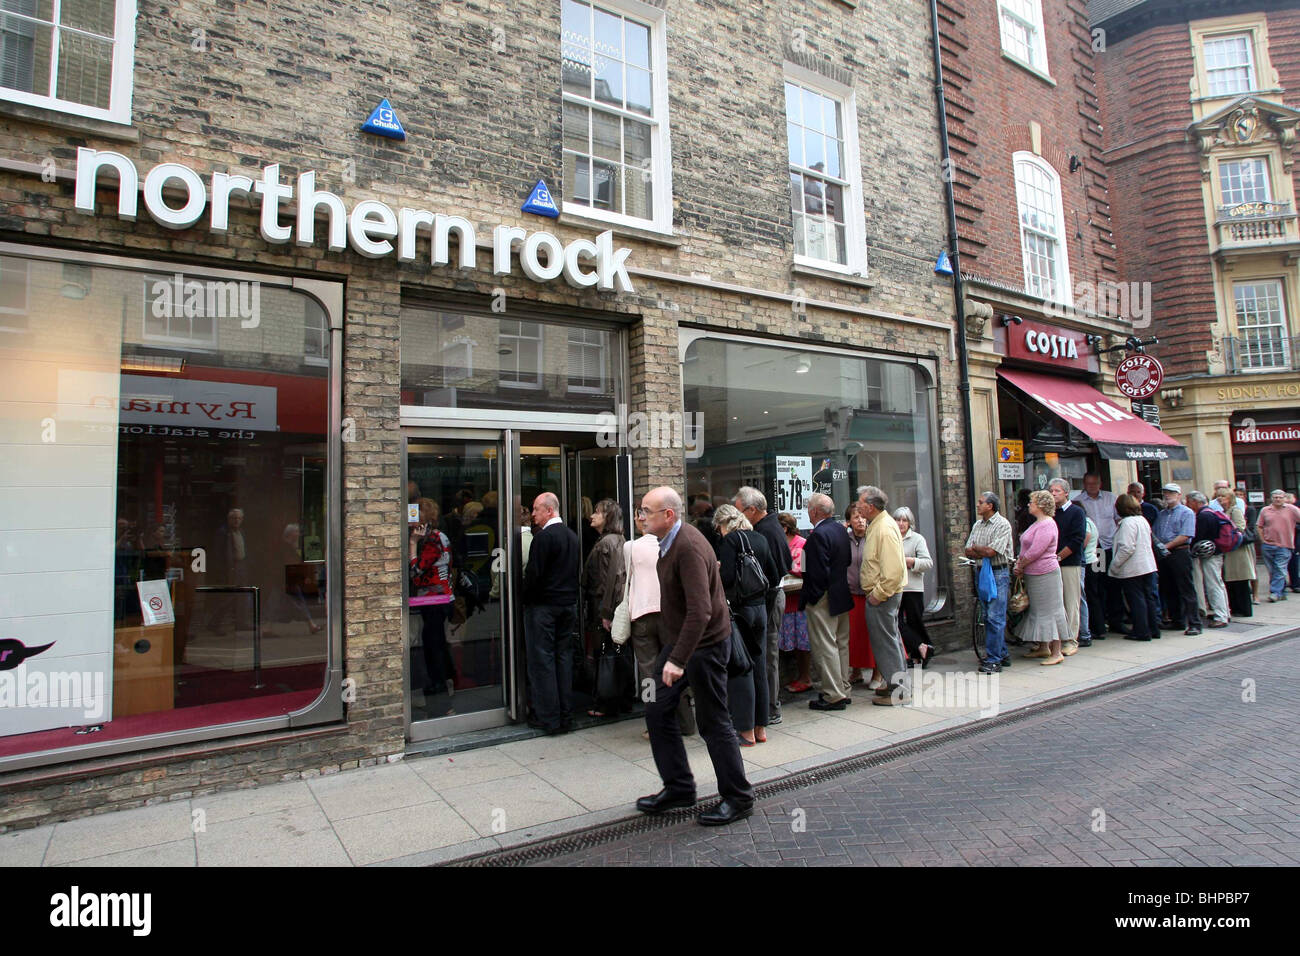 NORTHERN ROCK BUILDING SOCIETY QUEUES Stock Photo